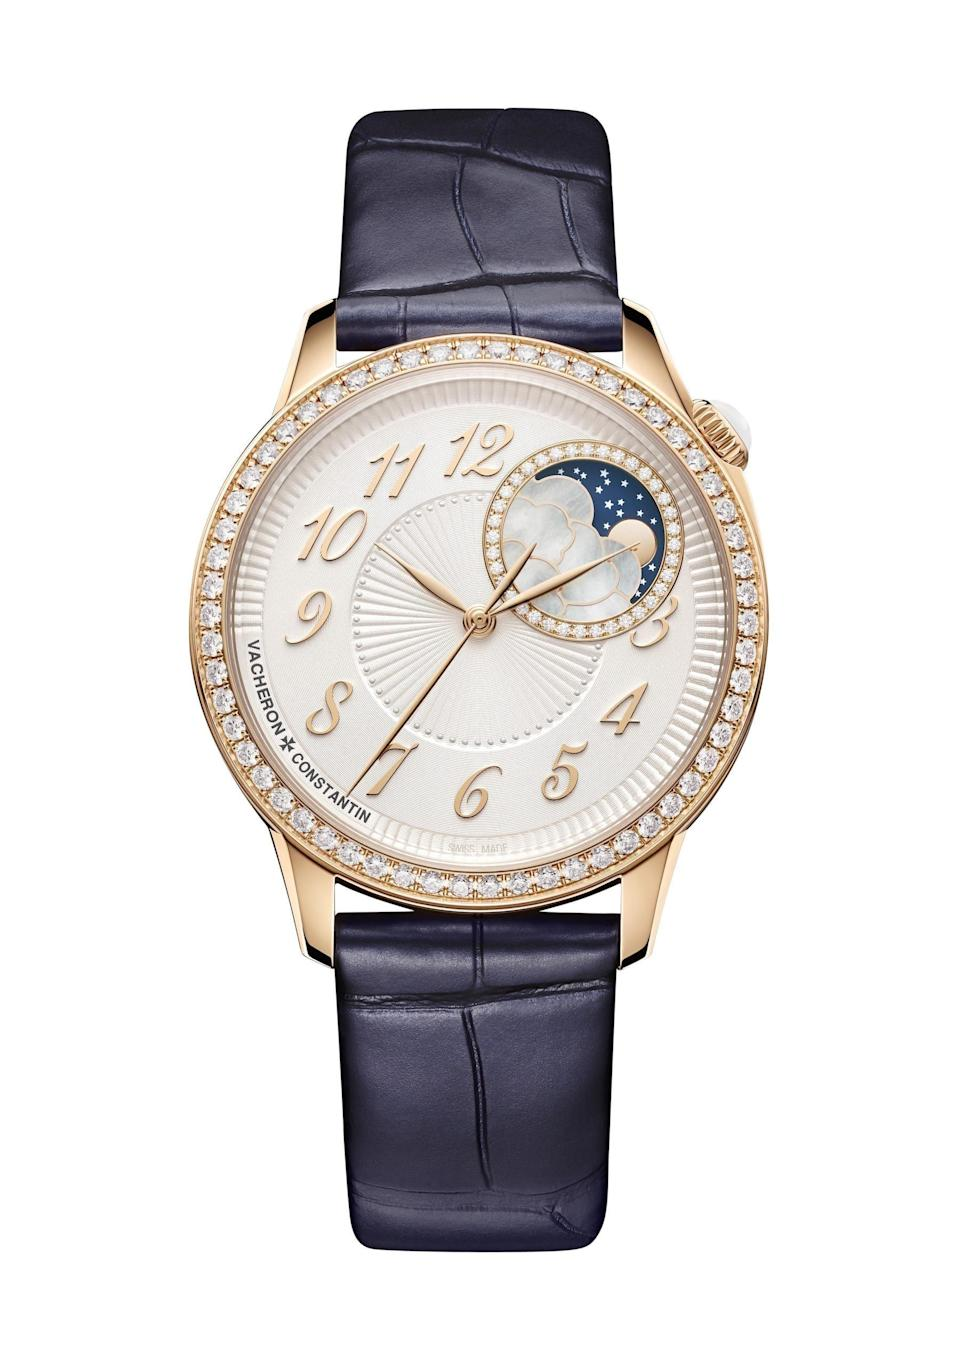 """<p><strong>$36200.00</strong></p><p><a href=""""https://www.vacheron-constantin.com/us/en/collections/egerie/8005f-000r-b498.html"""" rel=""""nofollow noopener"""" target=""""_blank"""" data-ylk=""""slk:Shop Now"""" class=""""link rapid-noclick-resp"""">Shop Now</a></p><p>Pre-dating the actual United States of America, was foinded in 1775 Vacheron Constantin, meaning the watch brand has over 265 years of expertise watch making. Its hallmarks are its uniquely high level of hand finishing and technical and aesthetic signatures. Its main collections include Patrimony, Traditionnelle, Métiers d'Art, Overseas, Fiftysix, Egerie, and Historiques, as well as a bespoke line known as it """"Les Cabinotiers"""" department. The self-winding Egerie style, pictured, features details like a fan-textured dial, off-center crown, date window or moonphase, Breguet numerals, and diamonds.</p>"""